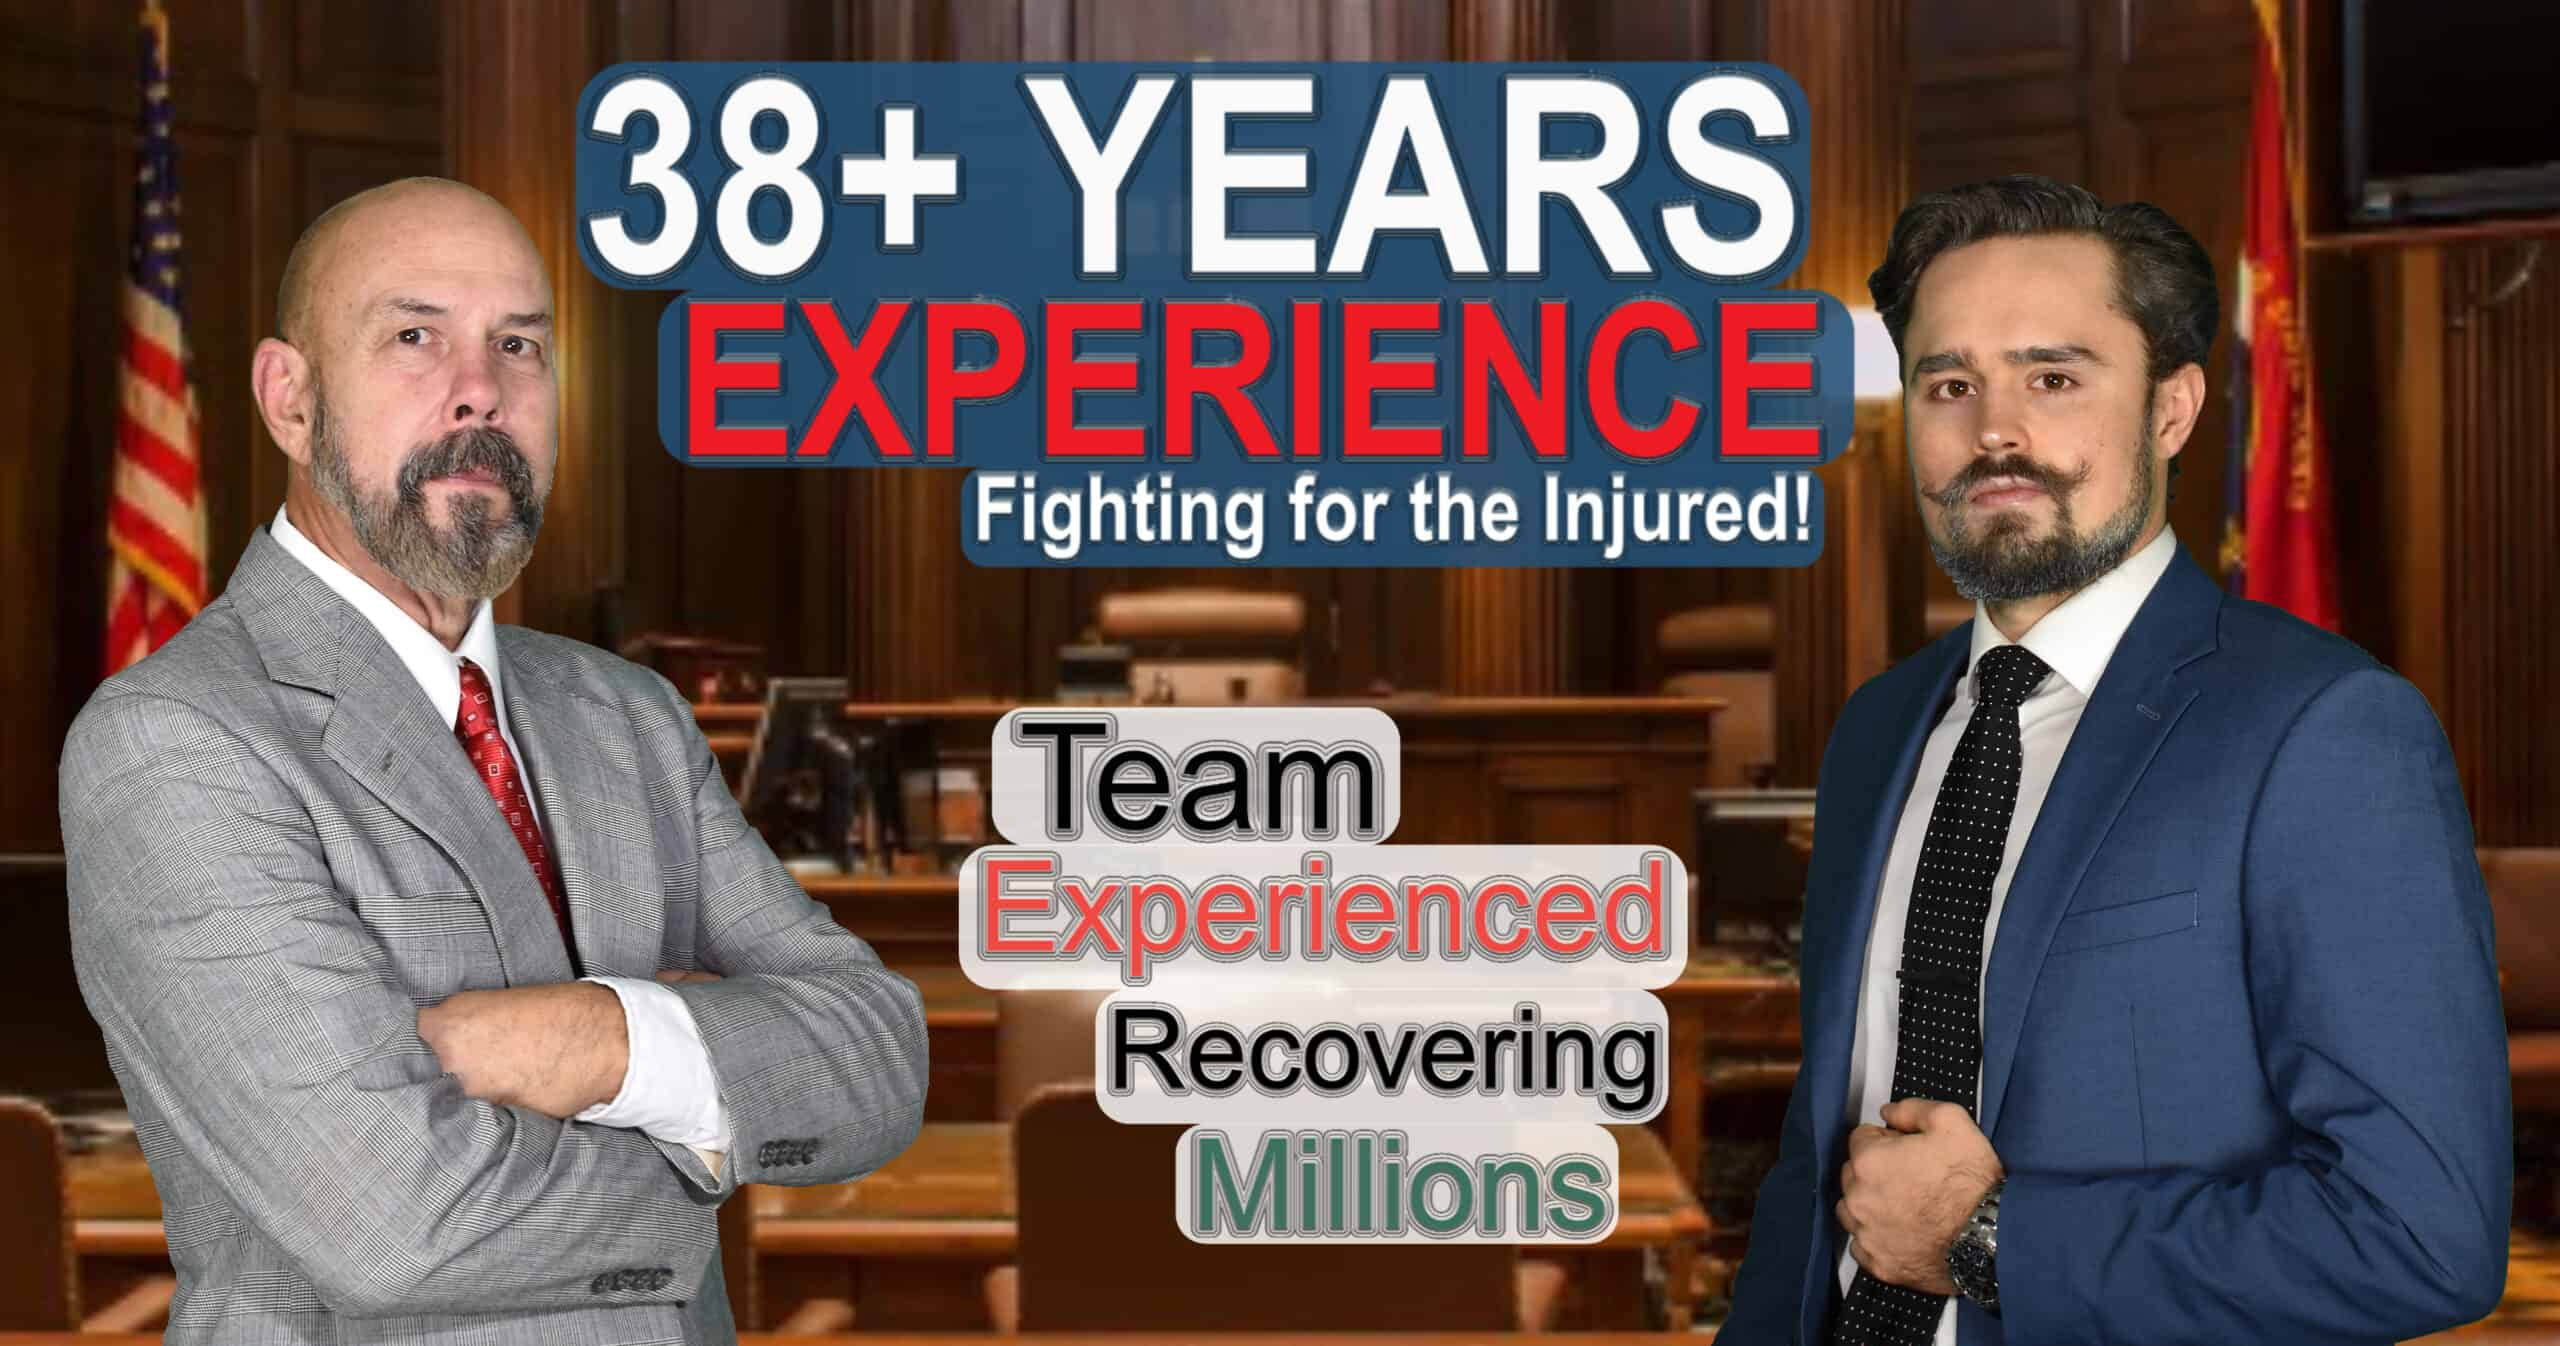 Abba-Georgia-Damages-Personal-Injury-Attorney-Lawyer-Hurt-Injured-Damages-Hospital-Car-Accident-Broken-Best-Merck-Law